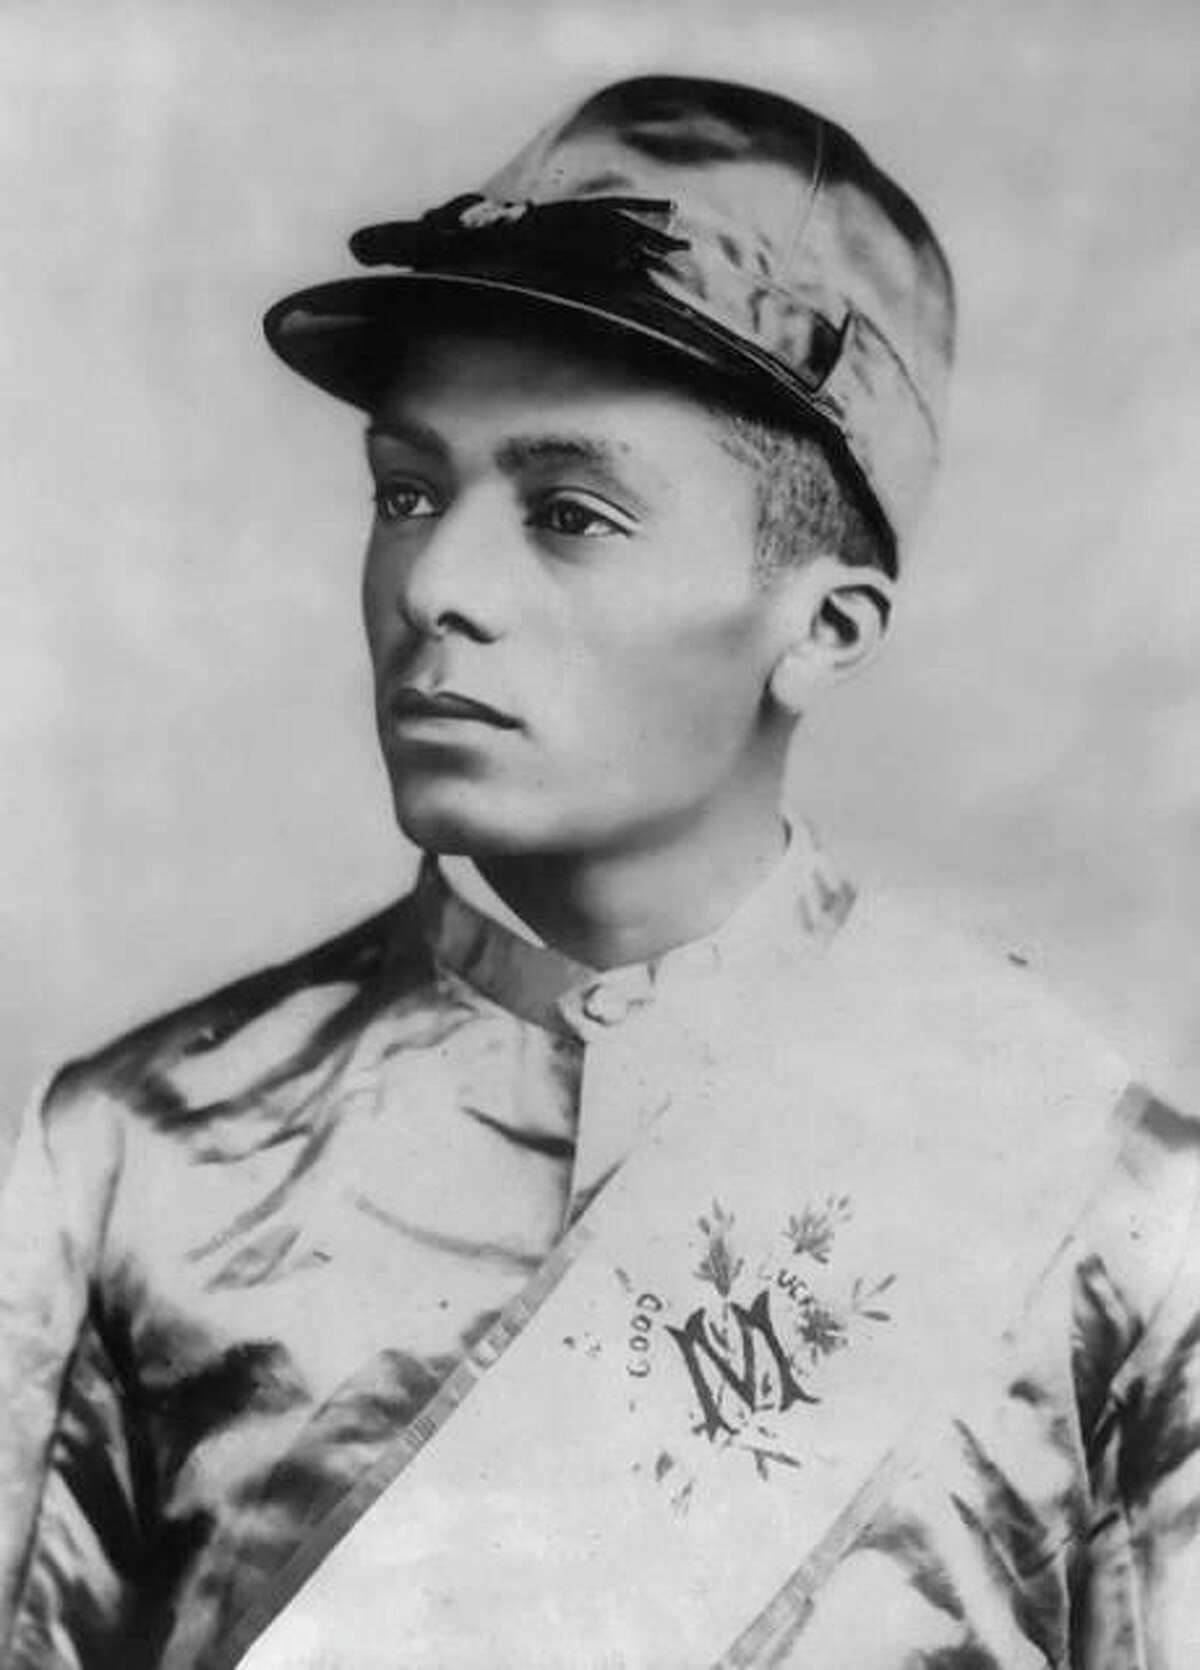 Isaac Burns Murphy was the first jockey to win the Kentucky Derby three times - 1884, 1890 and 1891 - and the first to win back-to-back derbies.